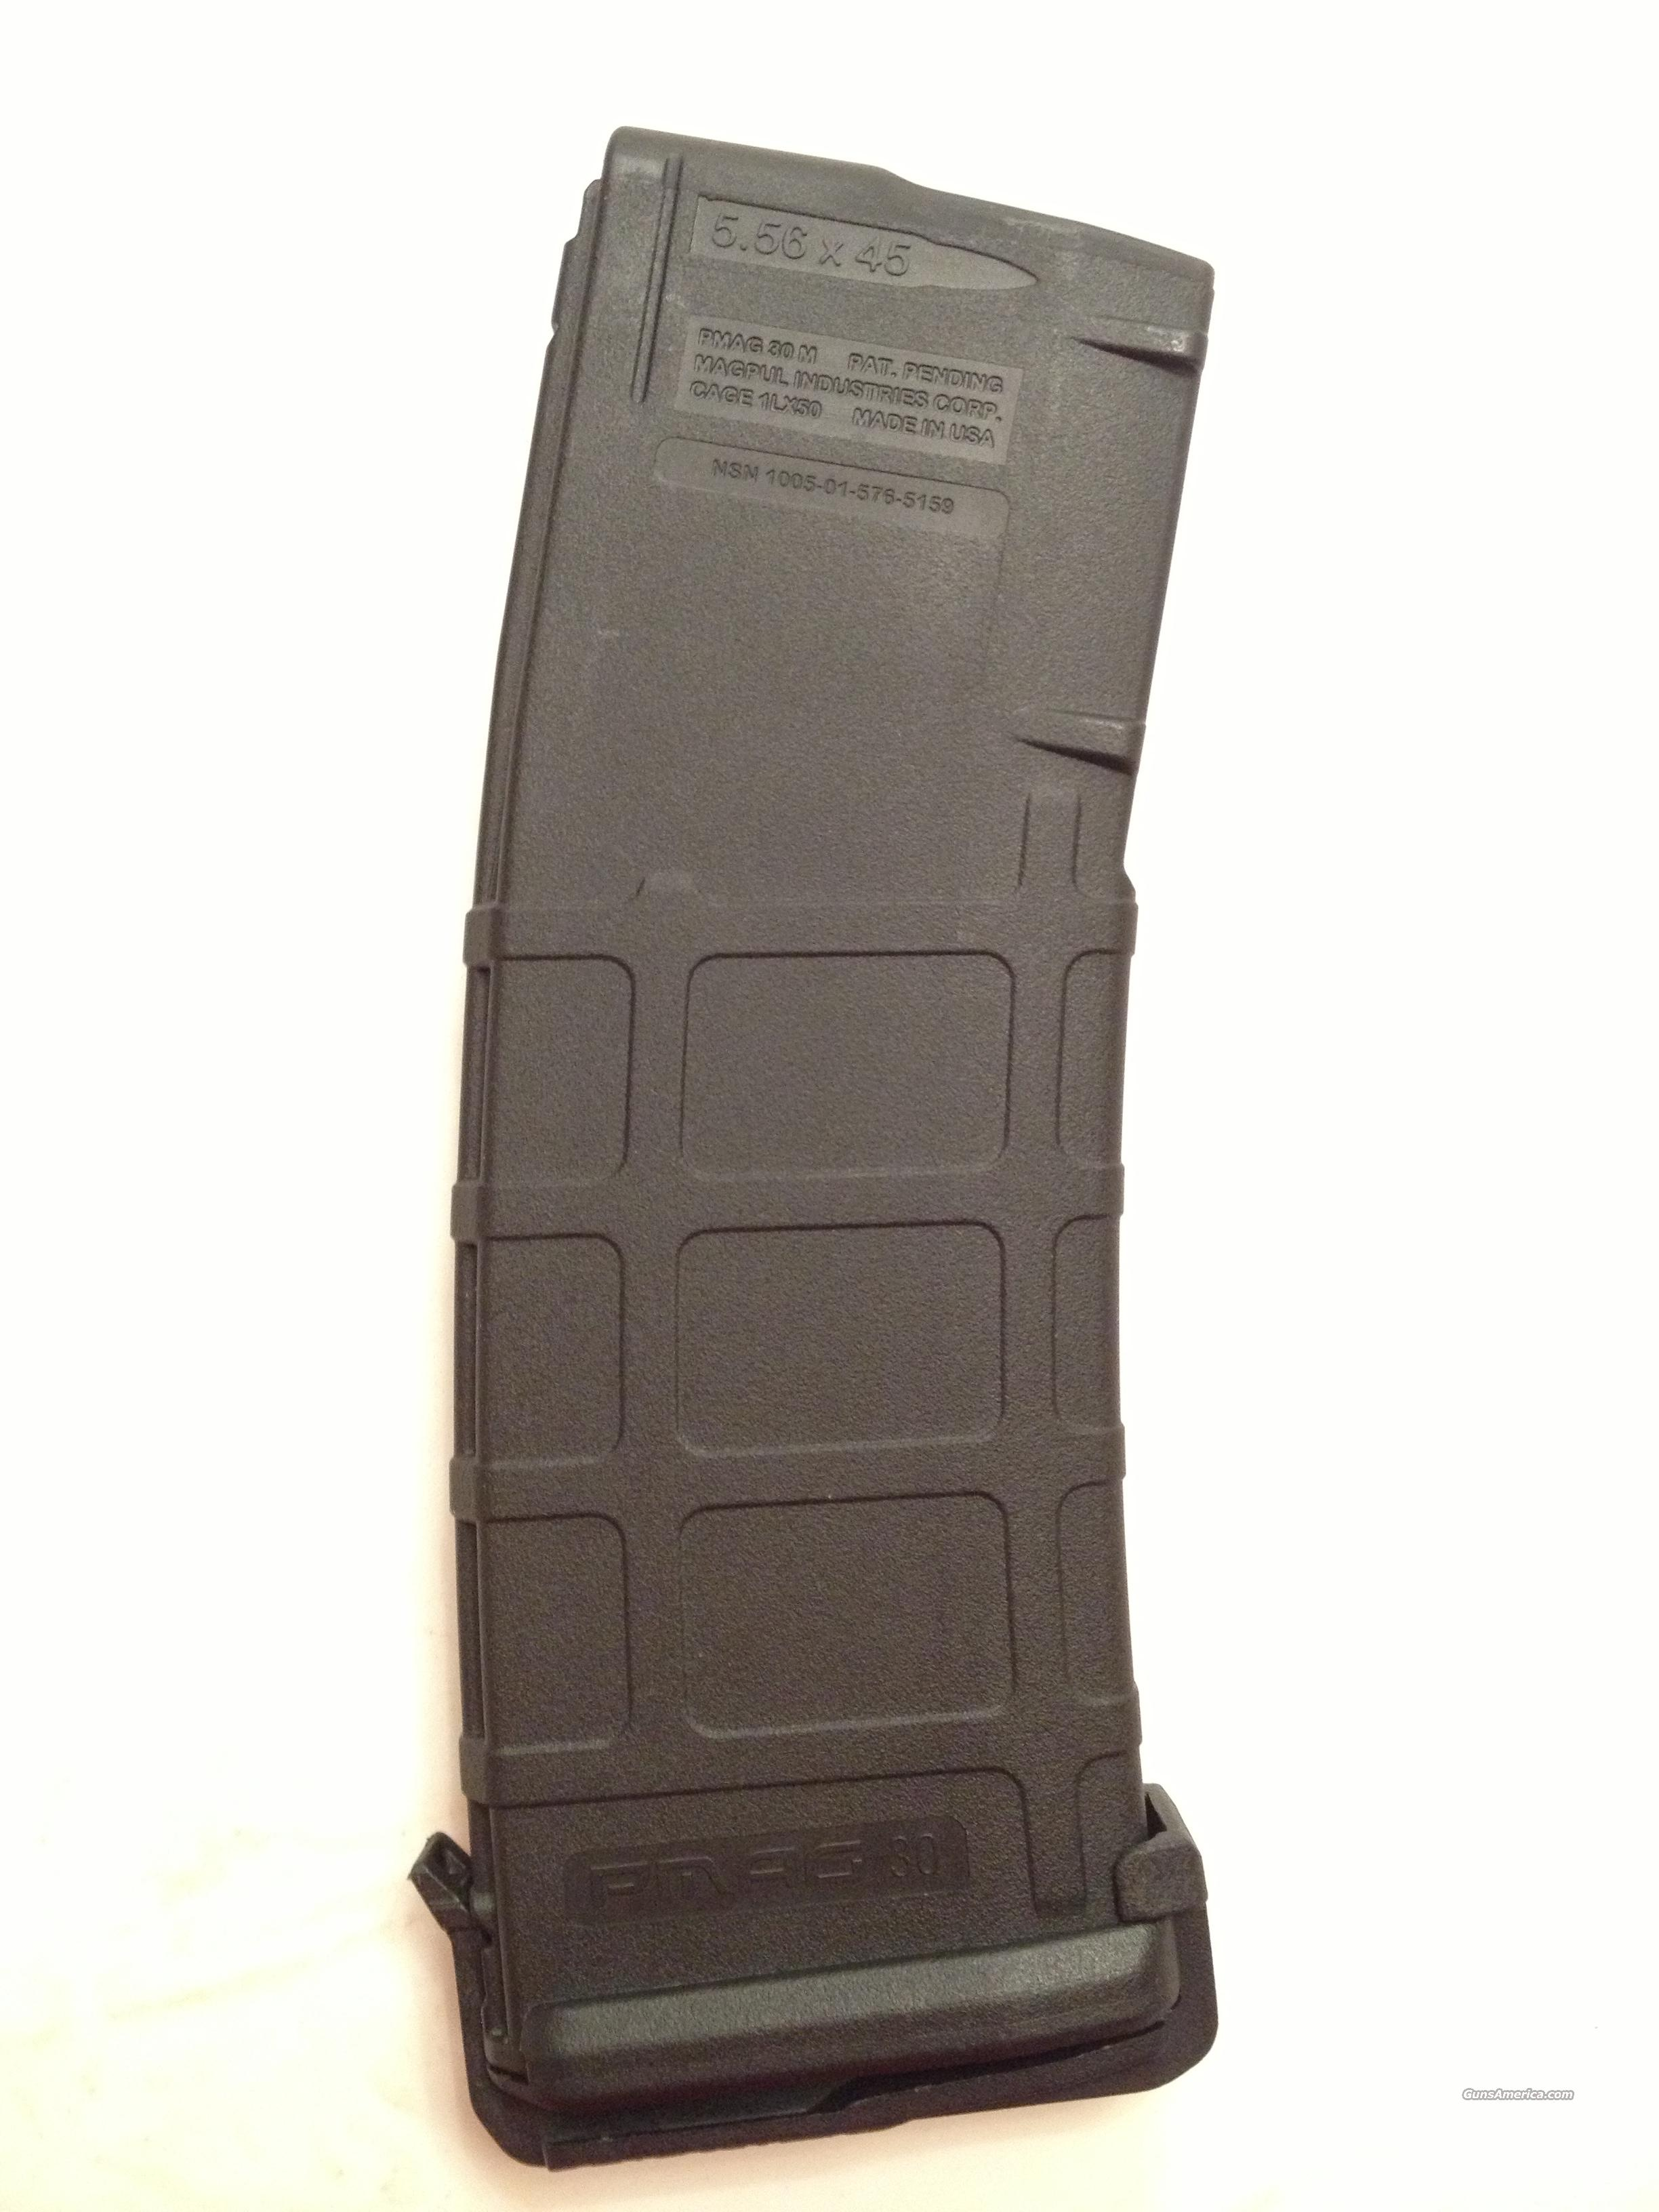 TWO New(Factory Sealed) Magpul PMAG 30rd Magazines  Non-Guns > Magazines & Clips > Rifle Magazines > AR-15 Type